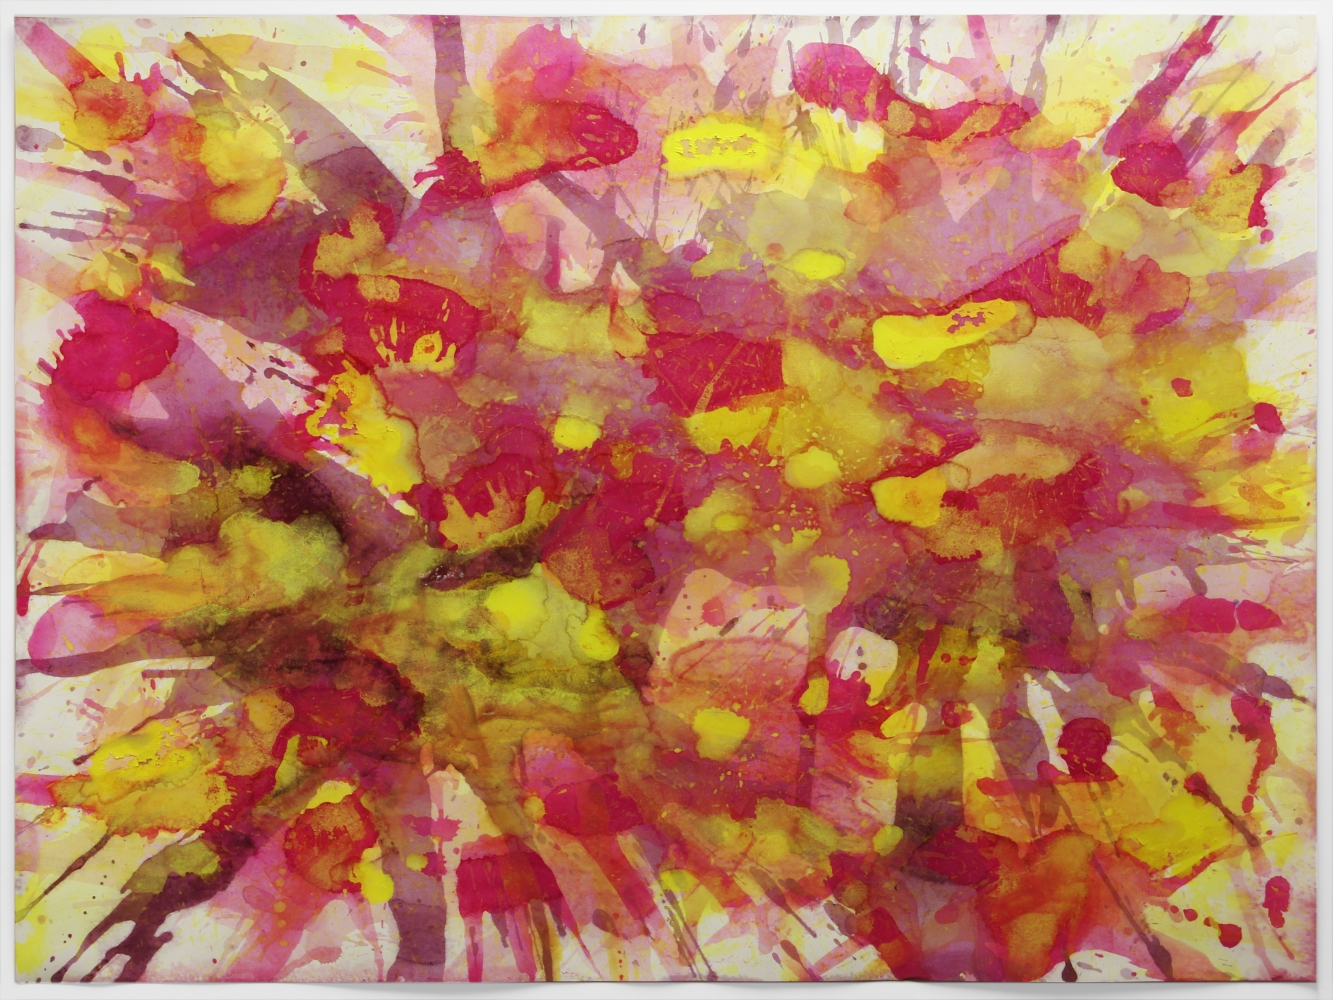 j. Steven Manolis, Montauk Sunrise 2014.02, watercolor and gouache on paper, 30 x 40 inches, Red Abstract Art, Abstract Expressionism art for sale at Manolis Projects Art Gallery, Miami, Fl